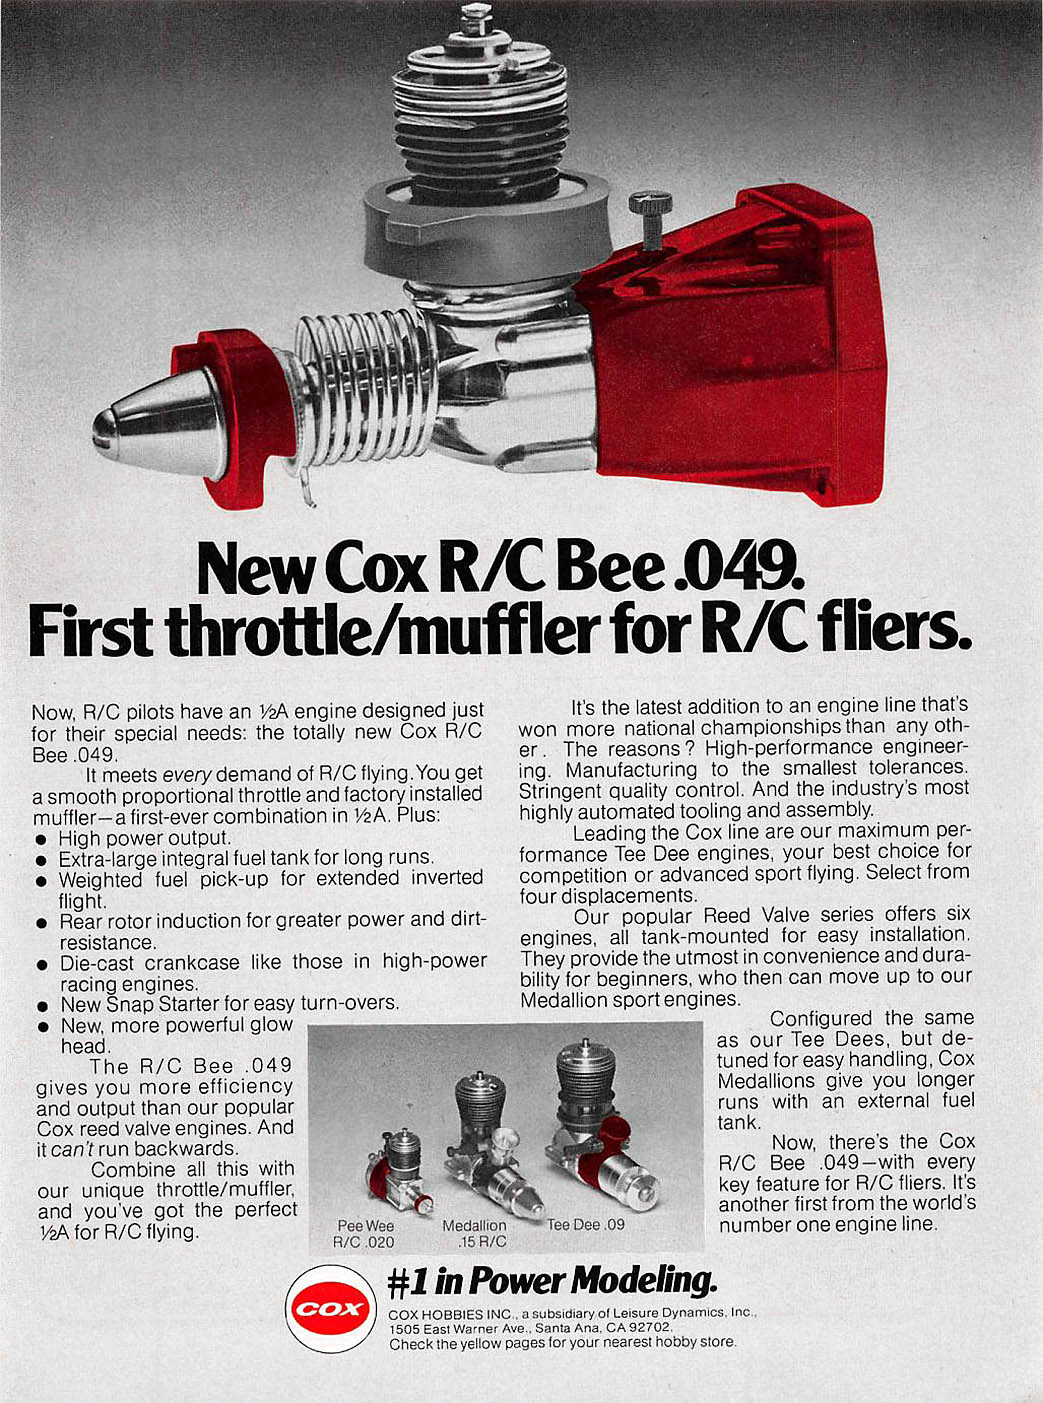 Cox RC Bee ad in RCM magazine